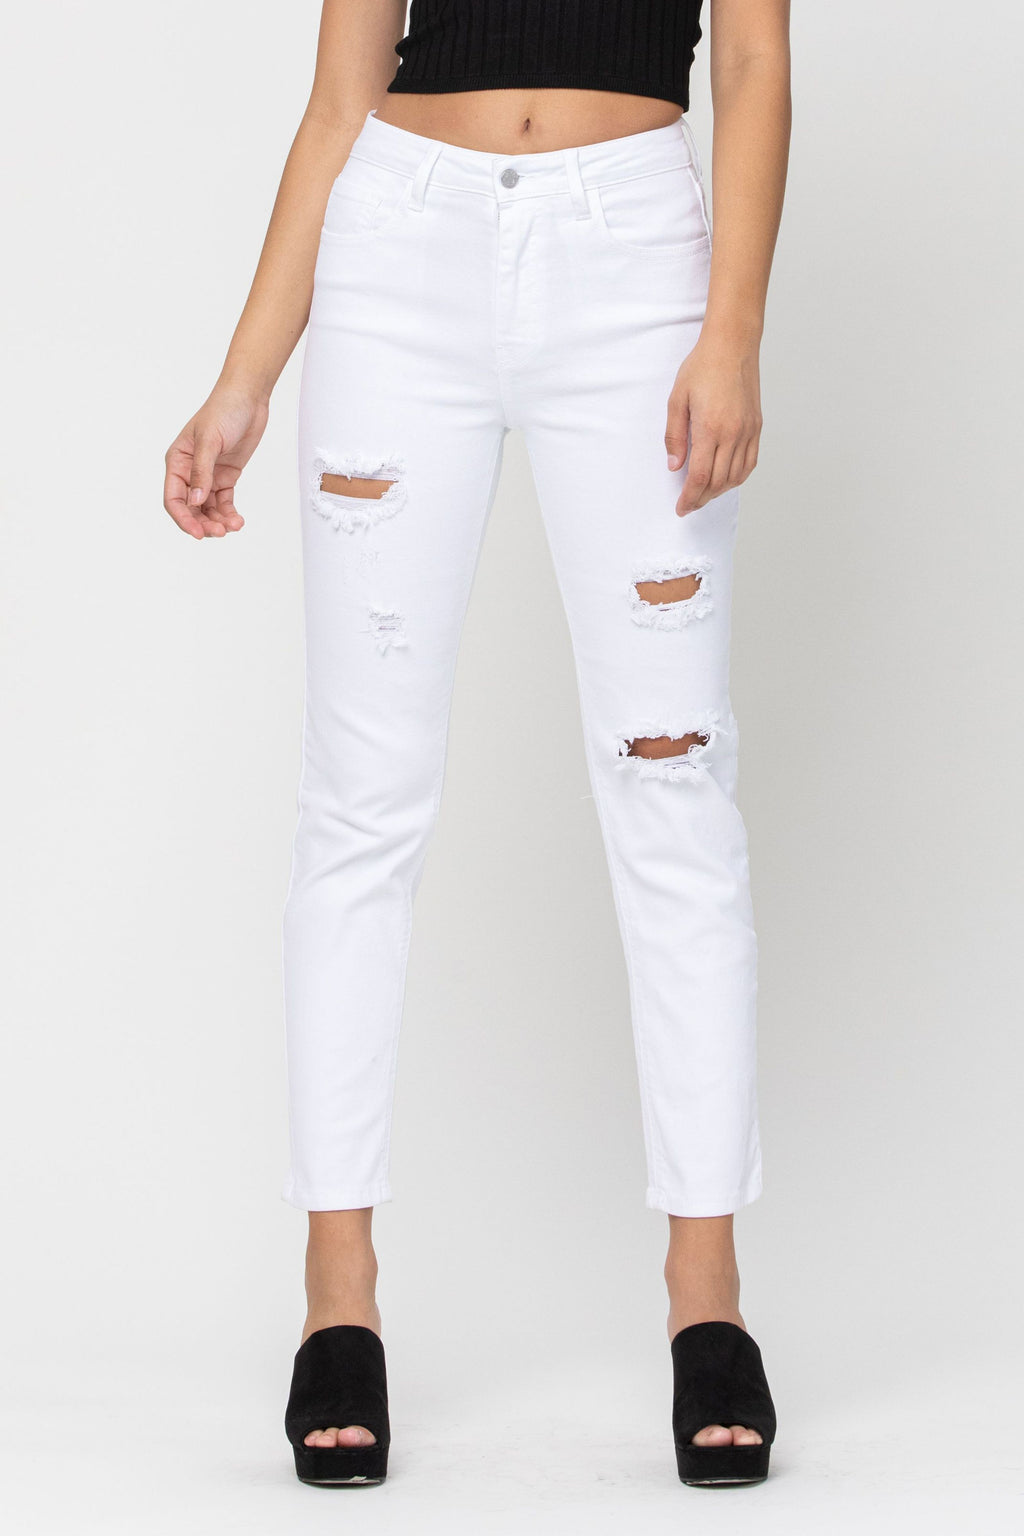 Cello High Rise White Distressed Jeans